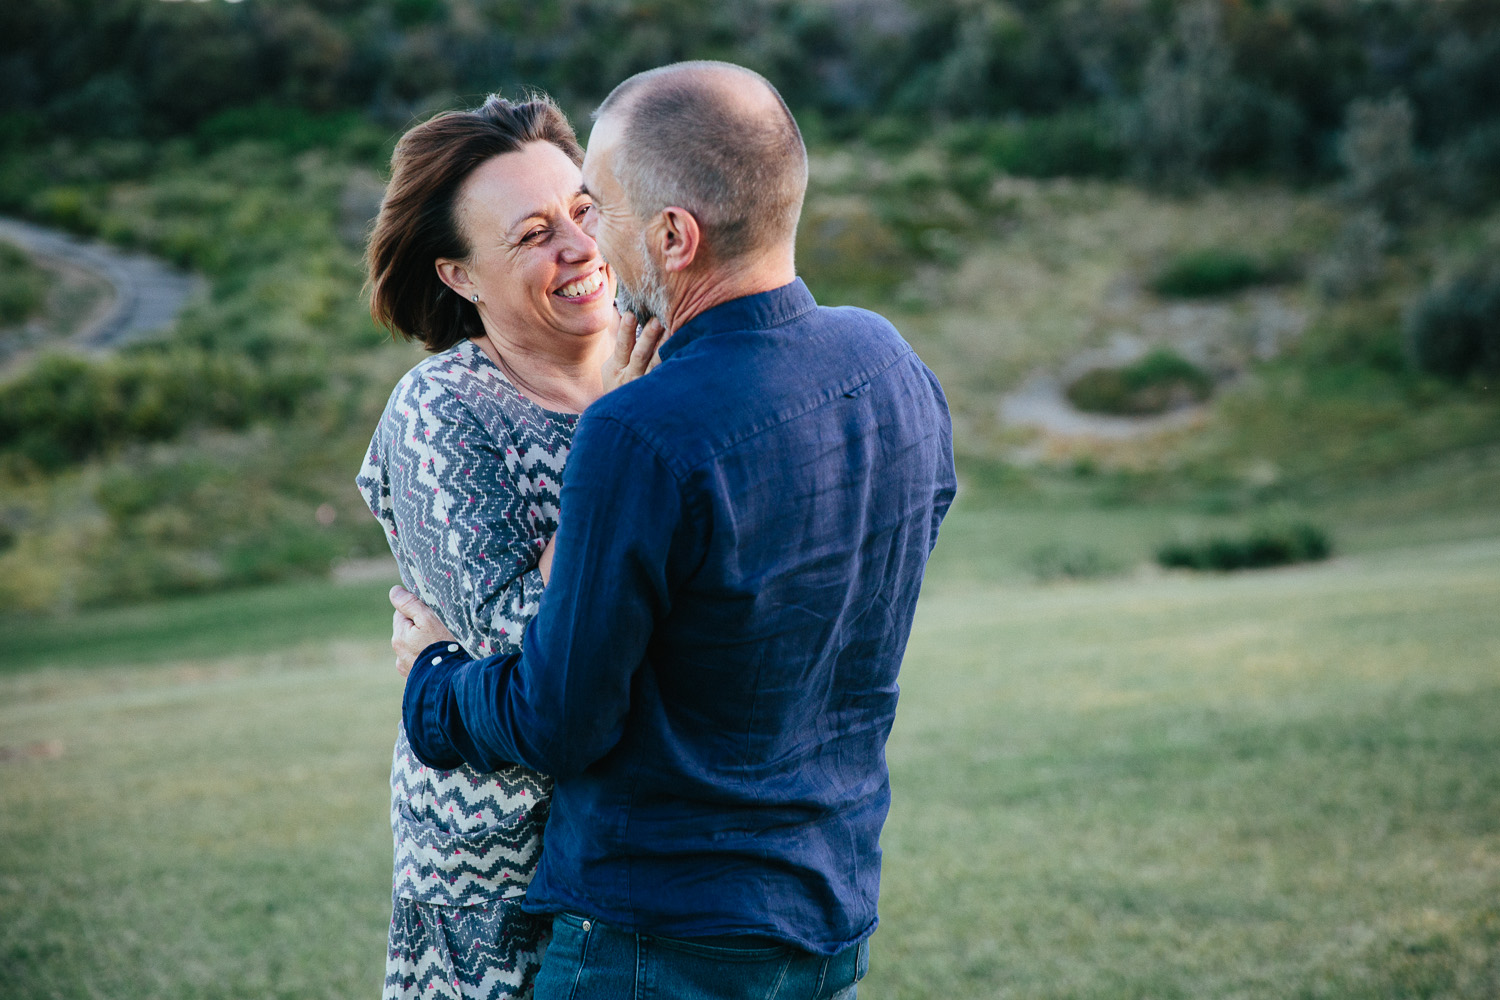 natural relaxed candid couples photographer central coast newcastle-30.jpg